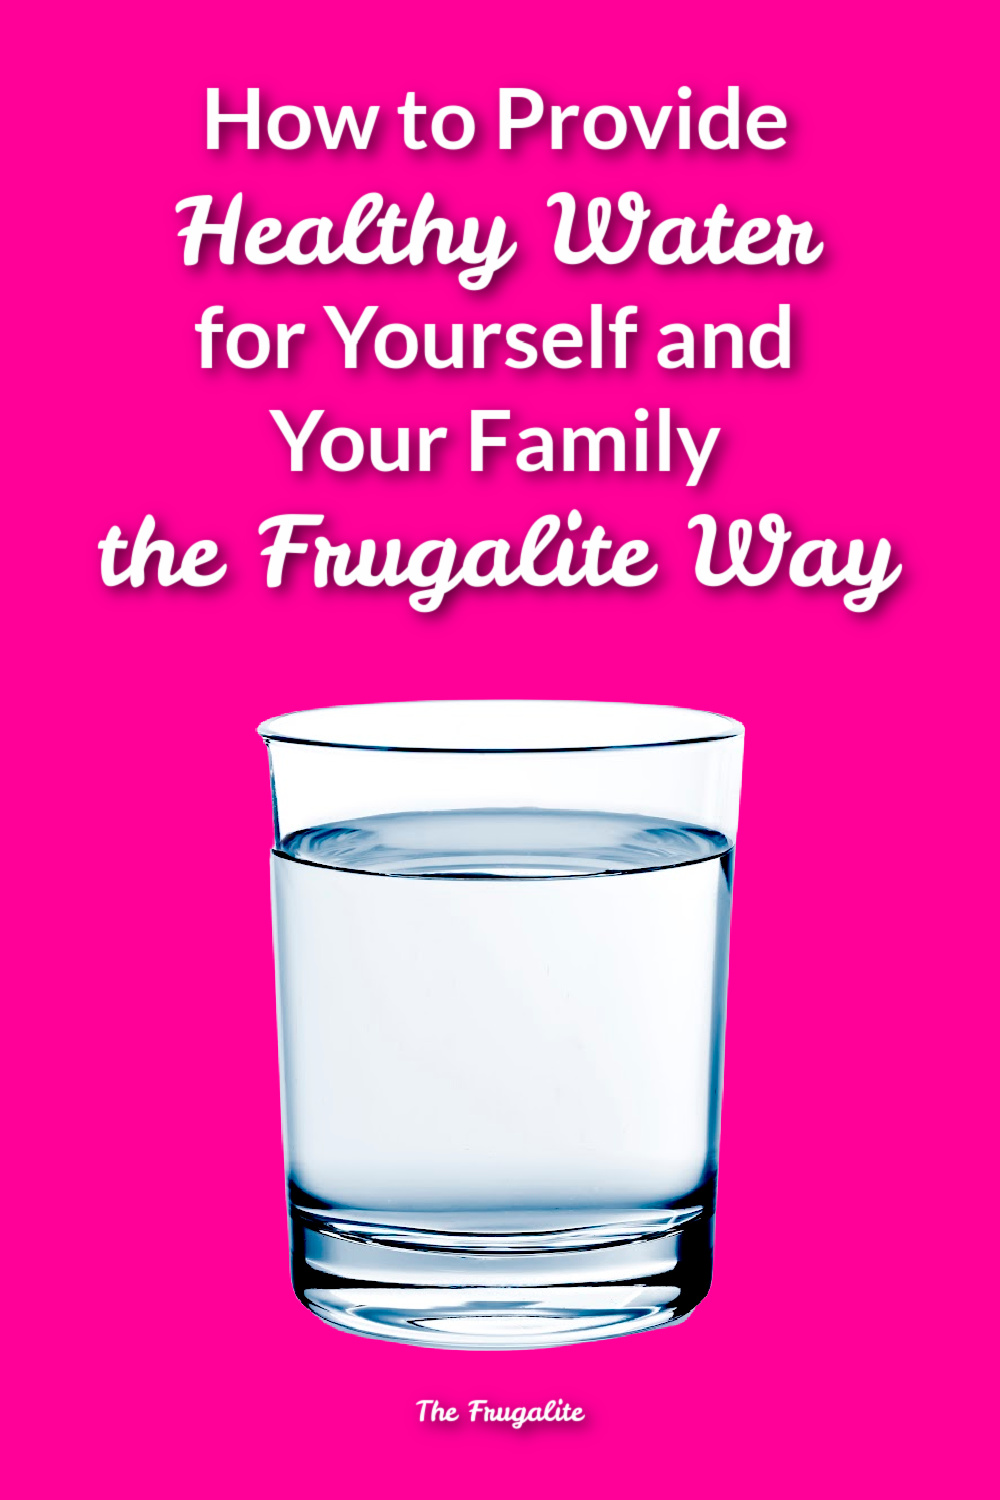 How to Provide Healthy Water for Yourself and Your Family the Frugalite Way